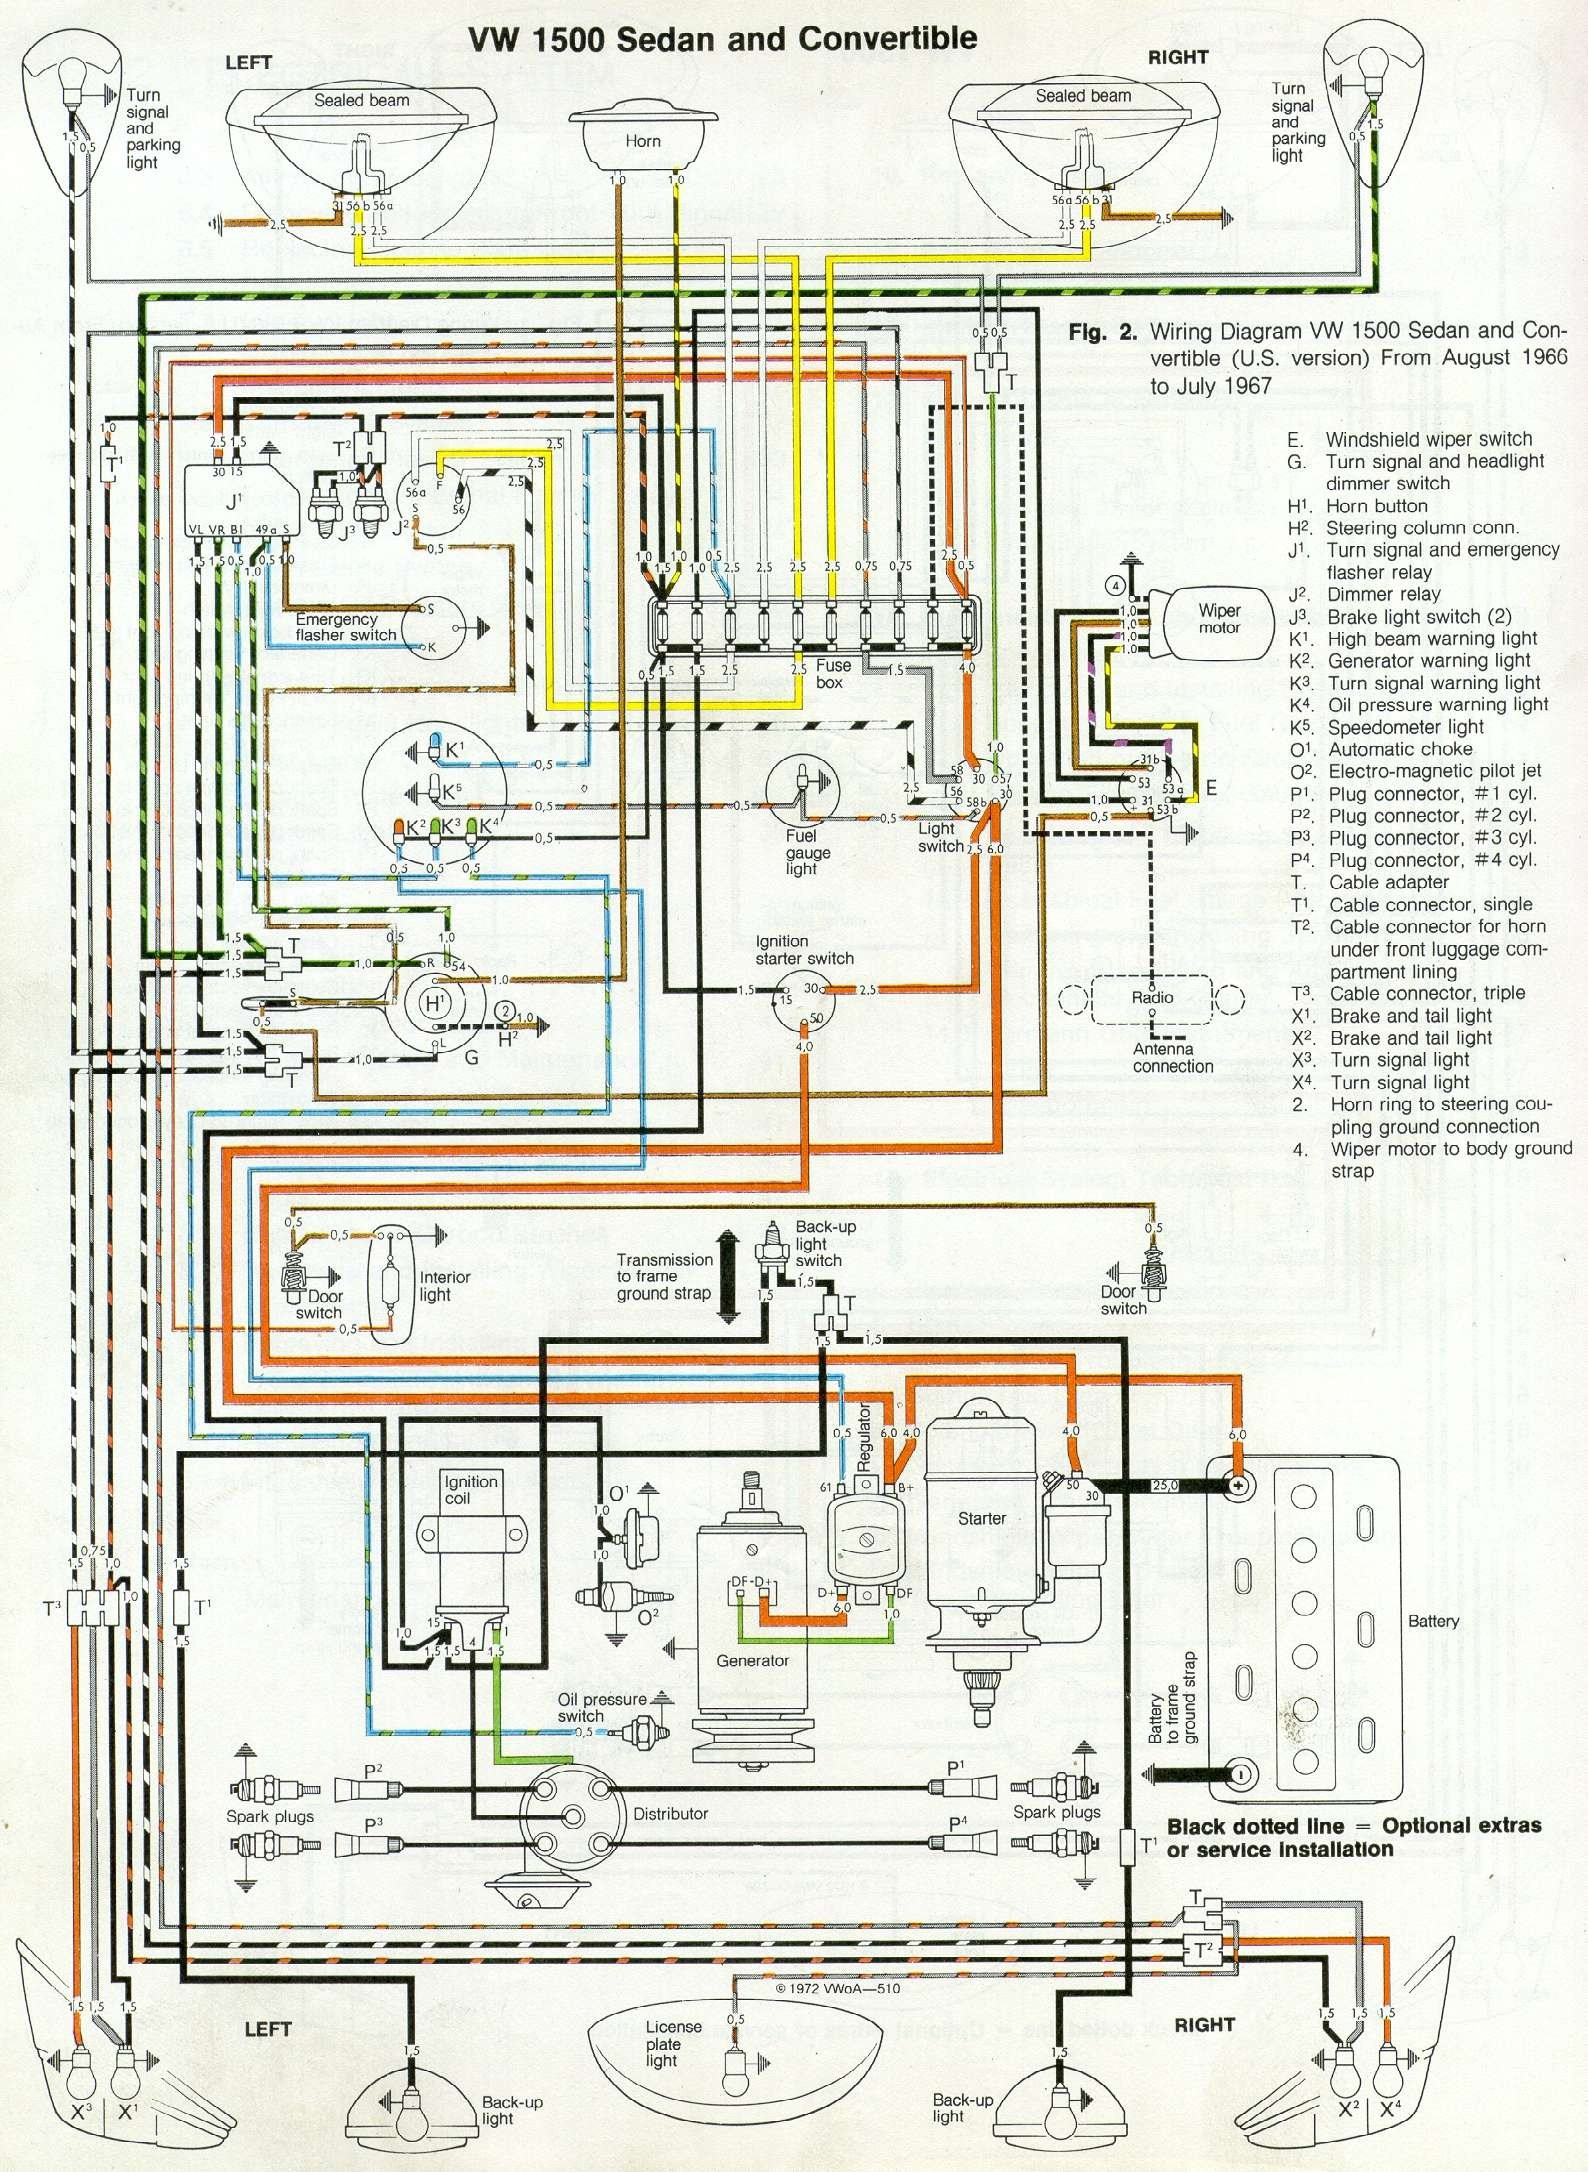 67 Beetle Wiring Diagram – U.S Version | 1967 VW Beetle